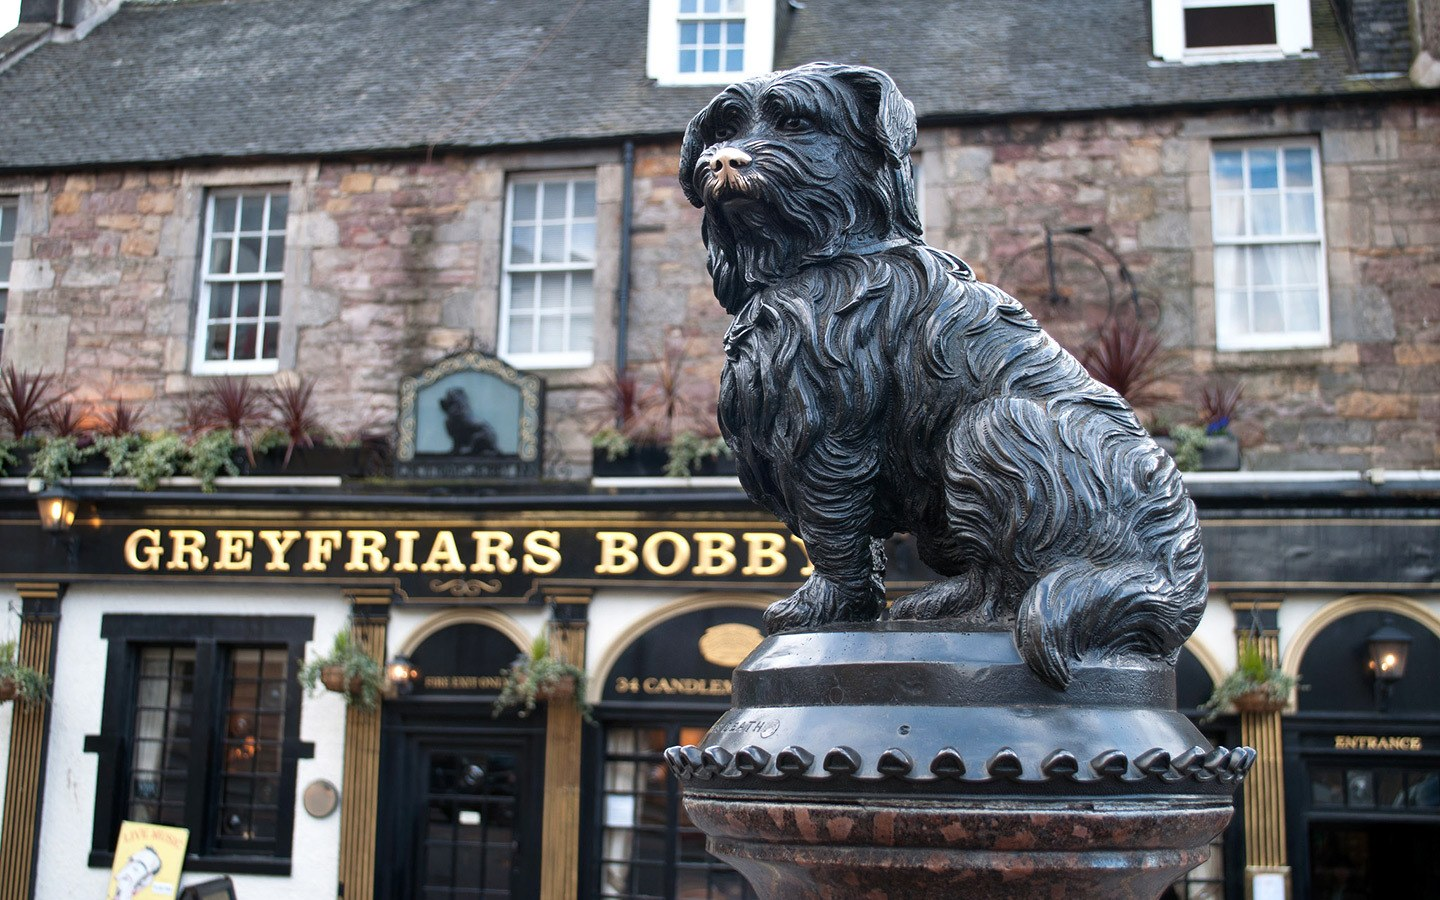 Greyfriars Bobby's statue in Edinburgh